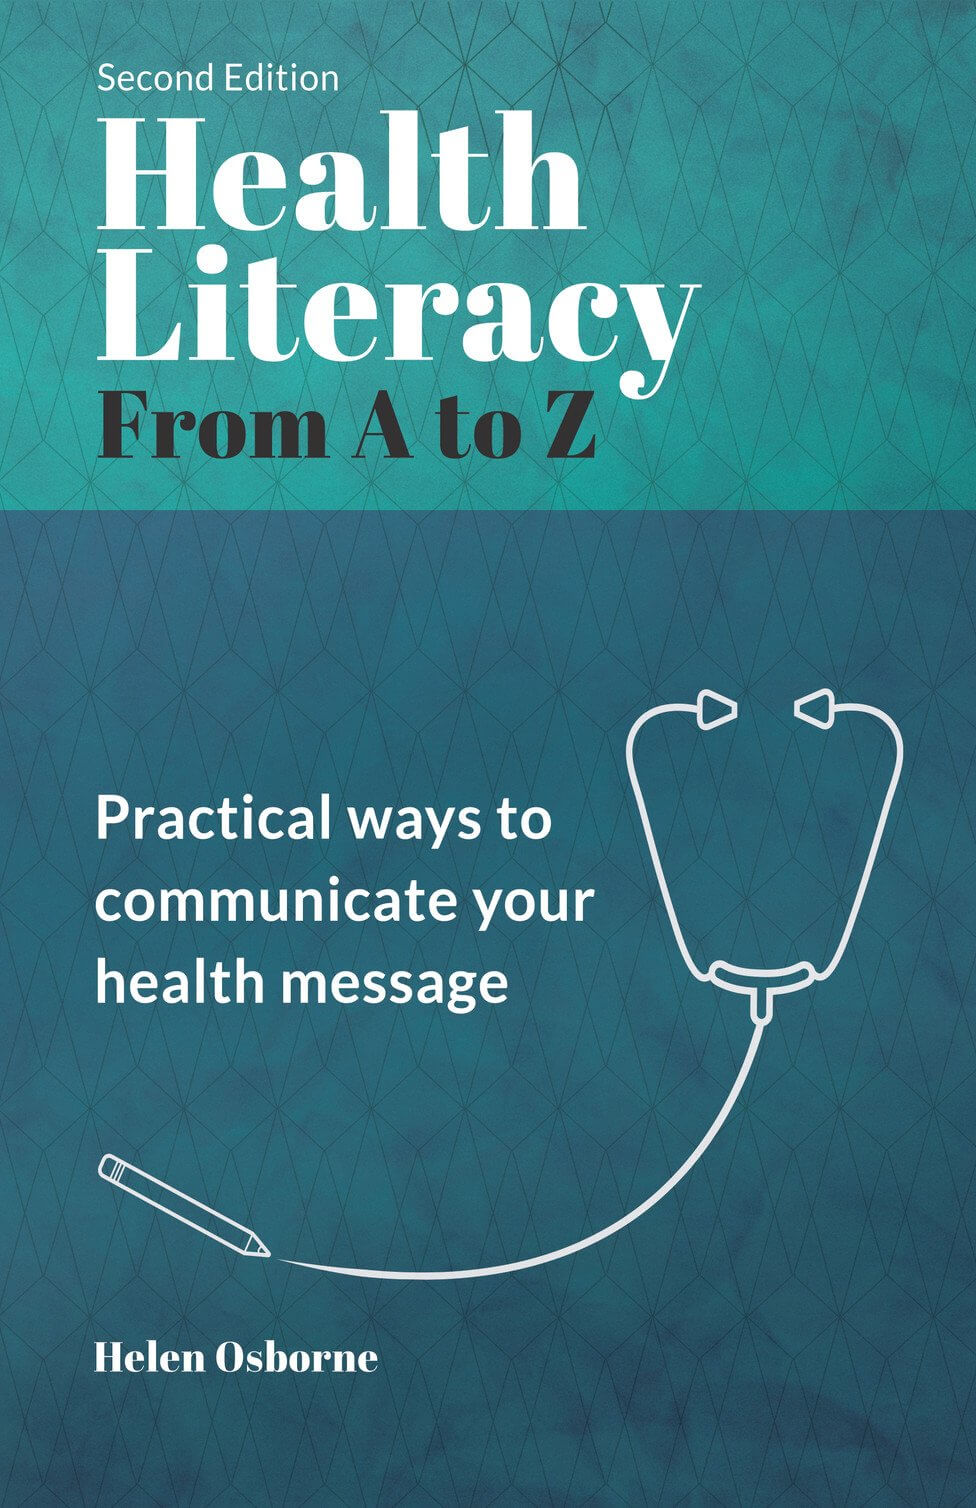 Health Literacy From A to Z: Practical Ways to Communicate Your Health Message, Second Edition (Updated 2018)